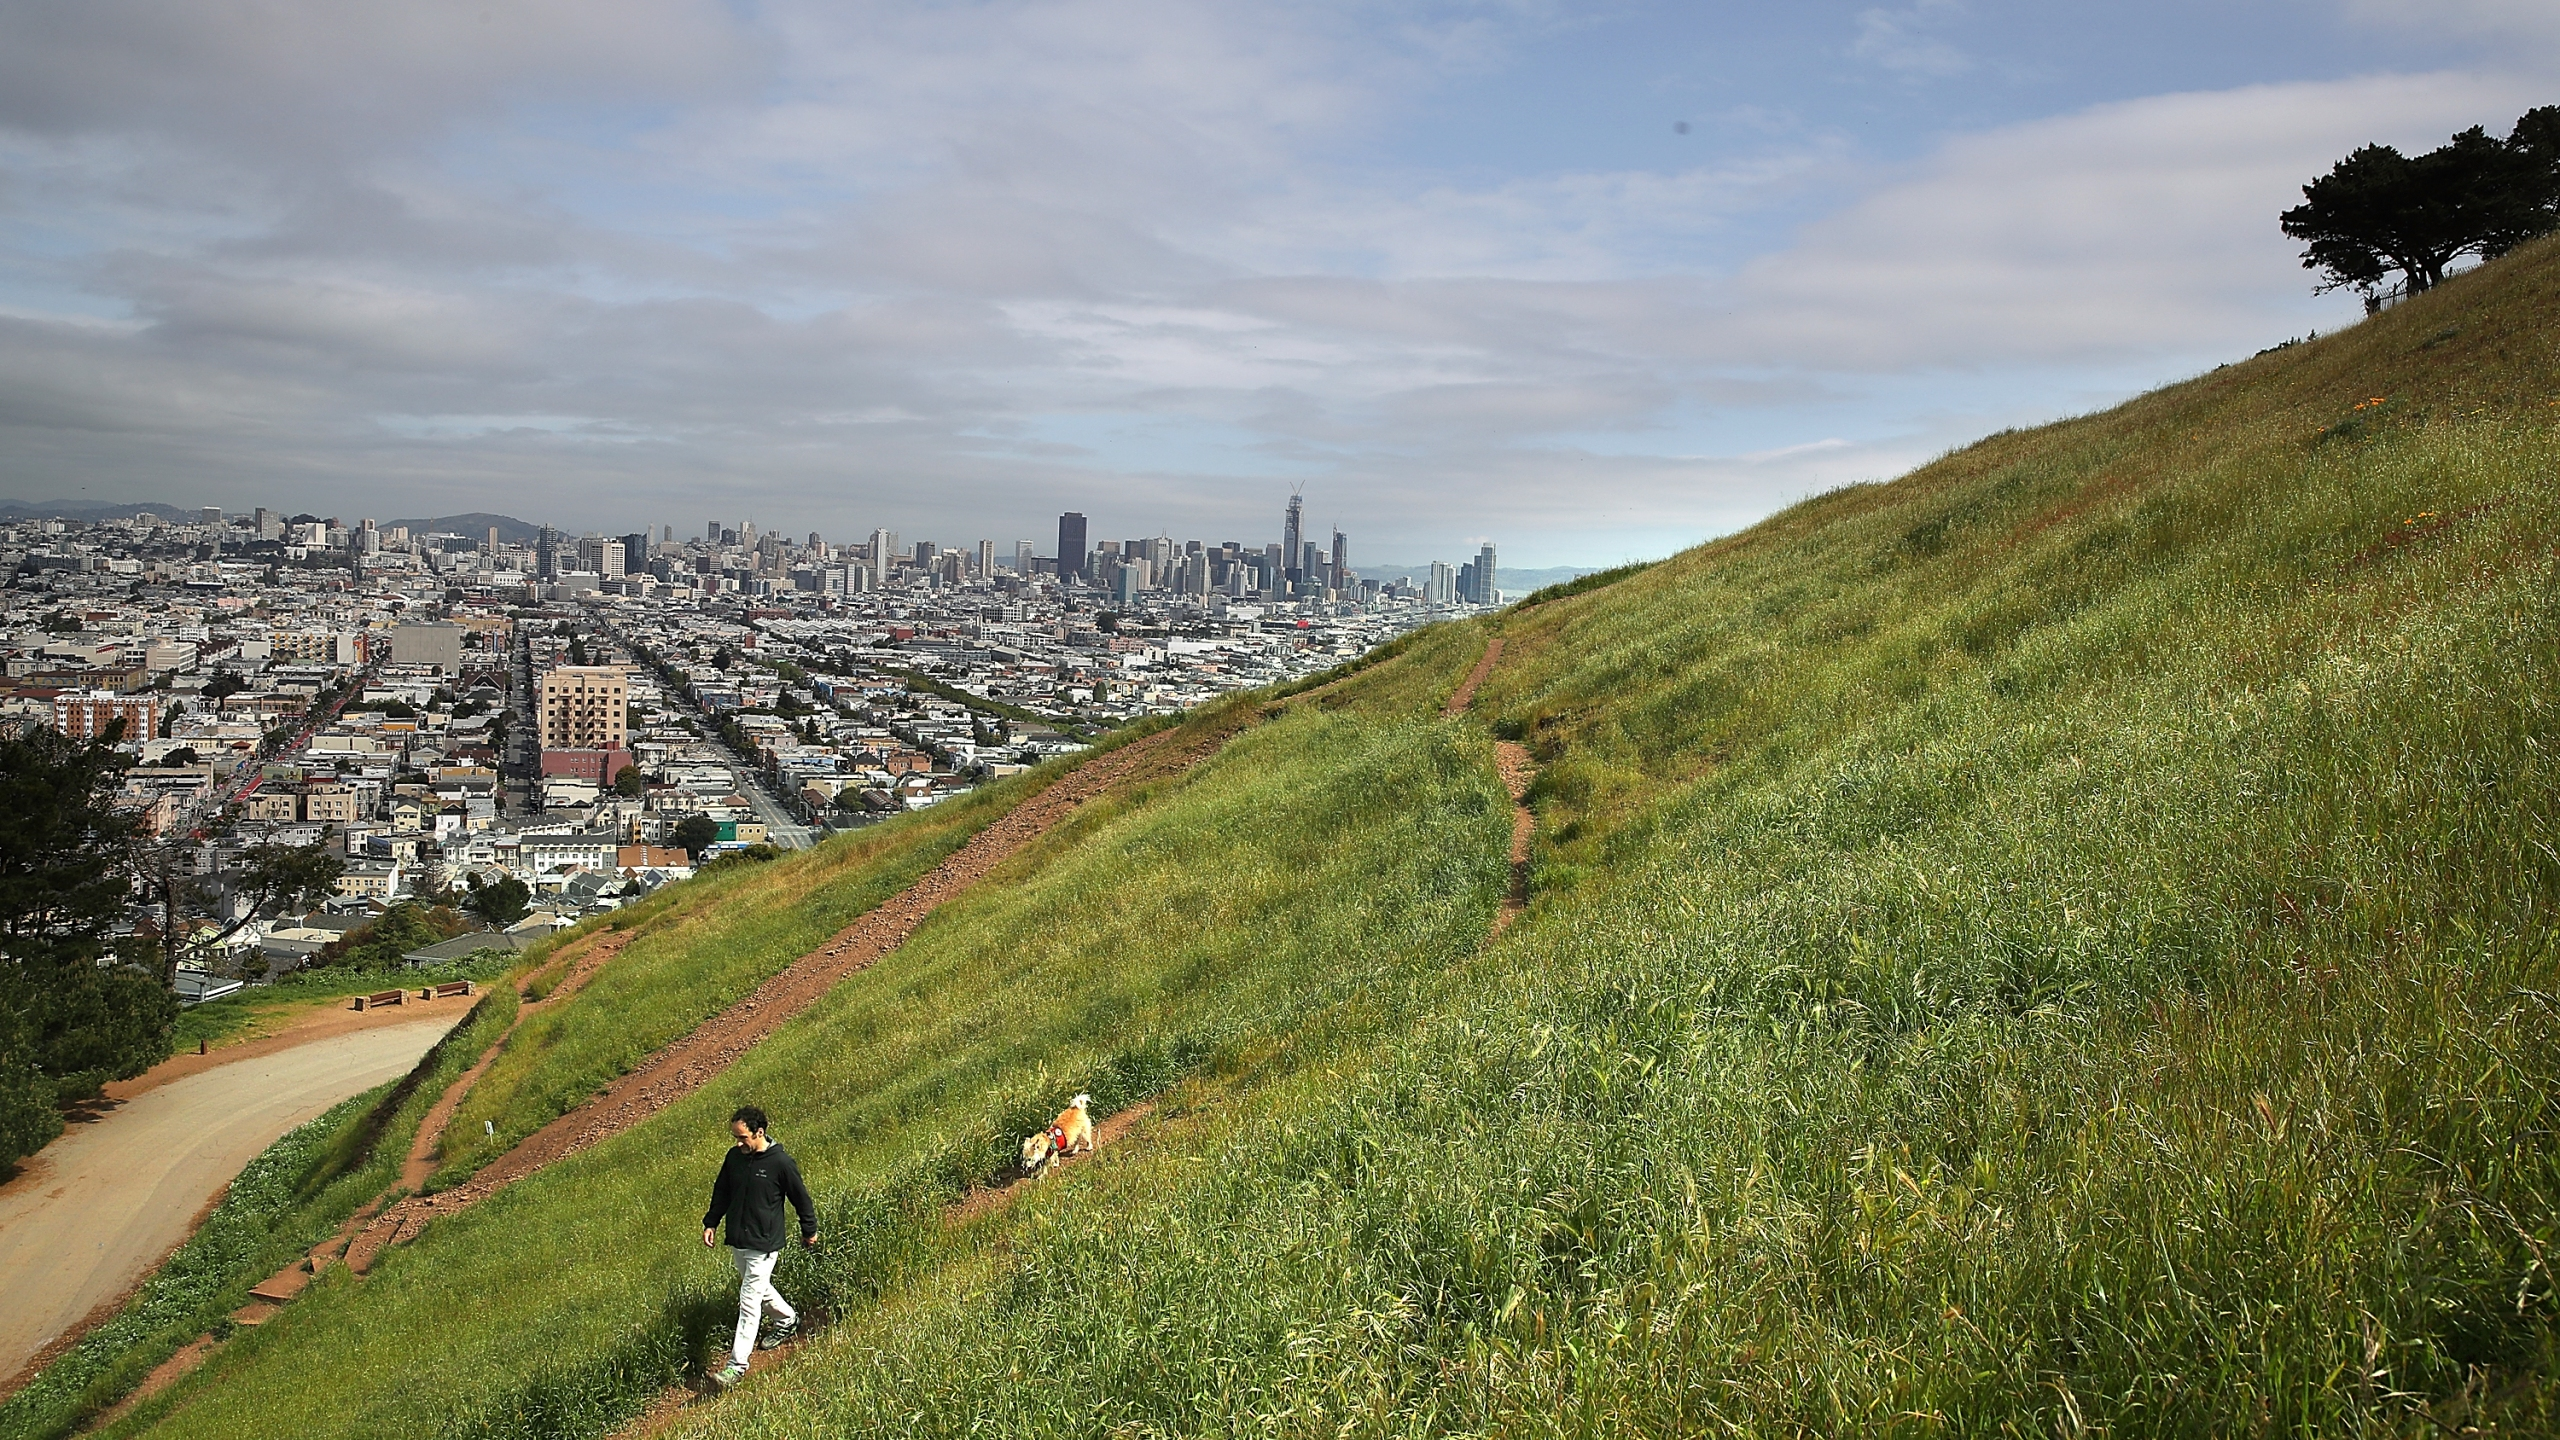 A man walks his dog at Bernal Heights Park in San Francisco in this file photo. (Justin Sullivan/Getty Images)